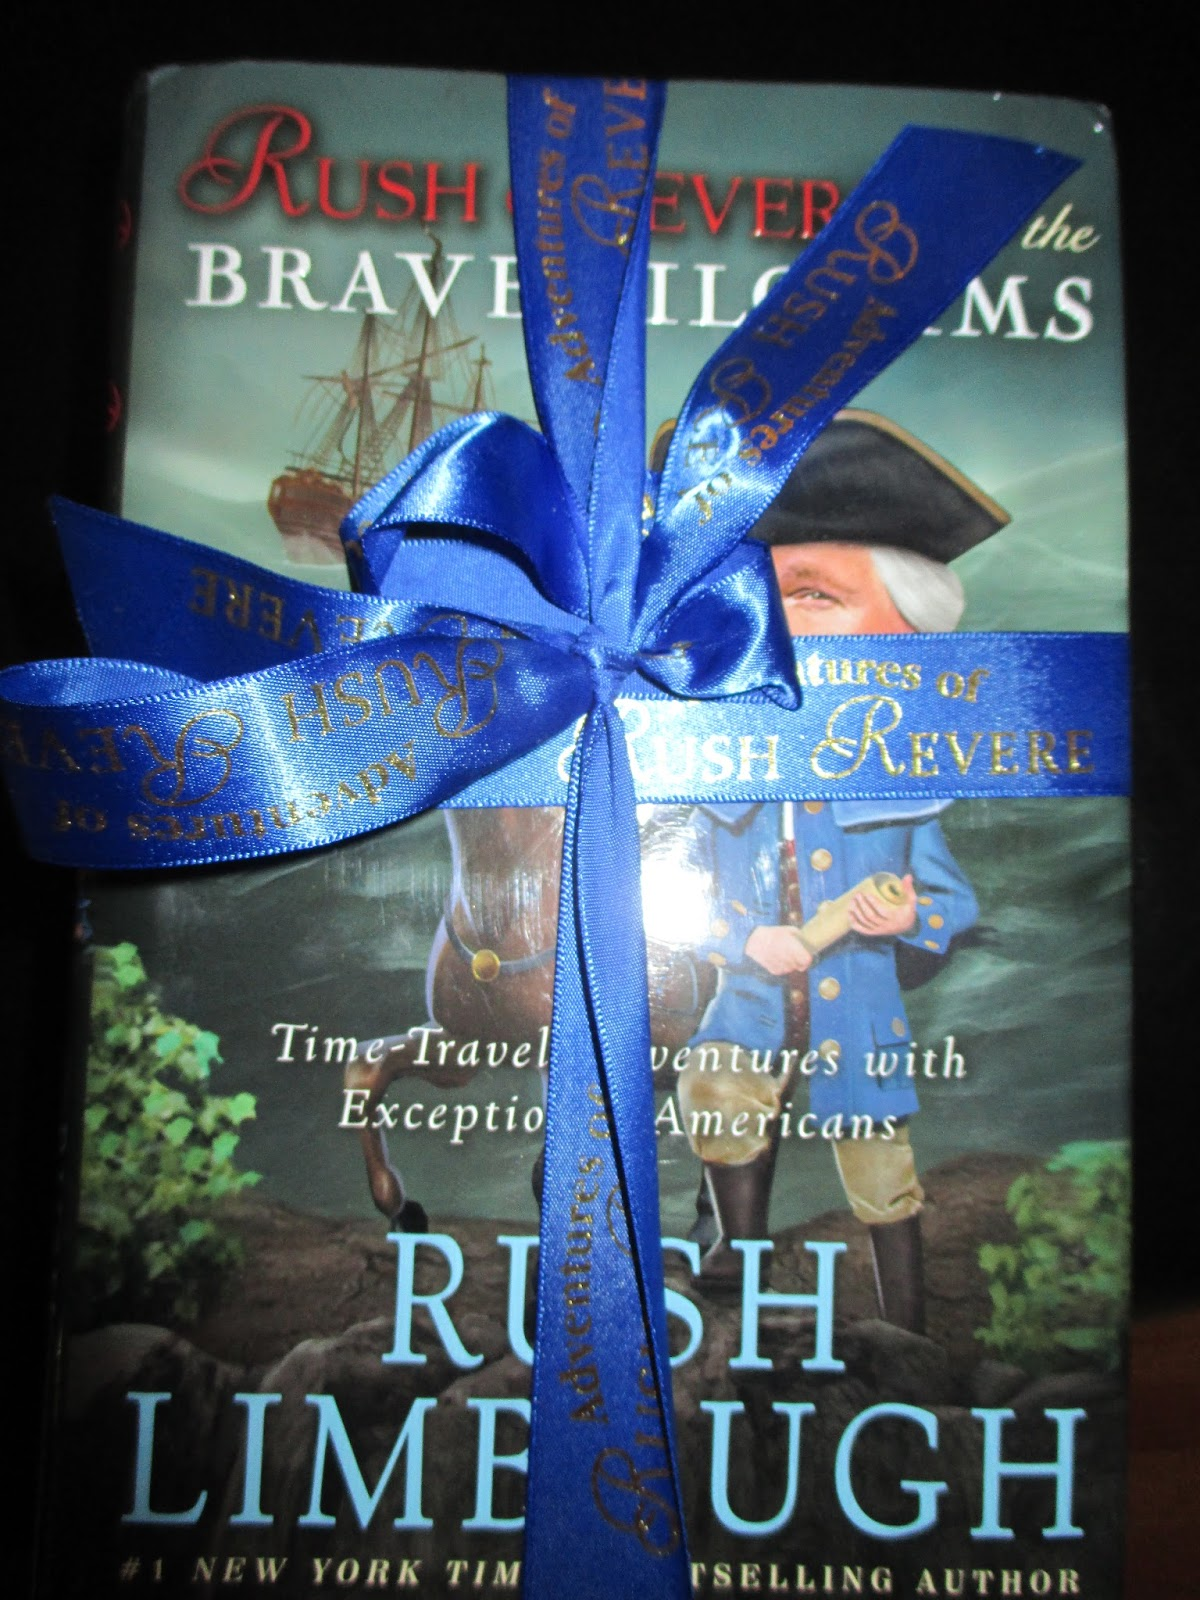 A Glimpse Of Normal A Review Of The Adventures Of Rush Revere Book Series From Adventures Of